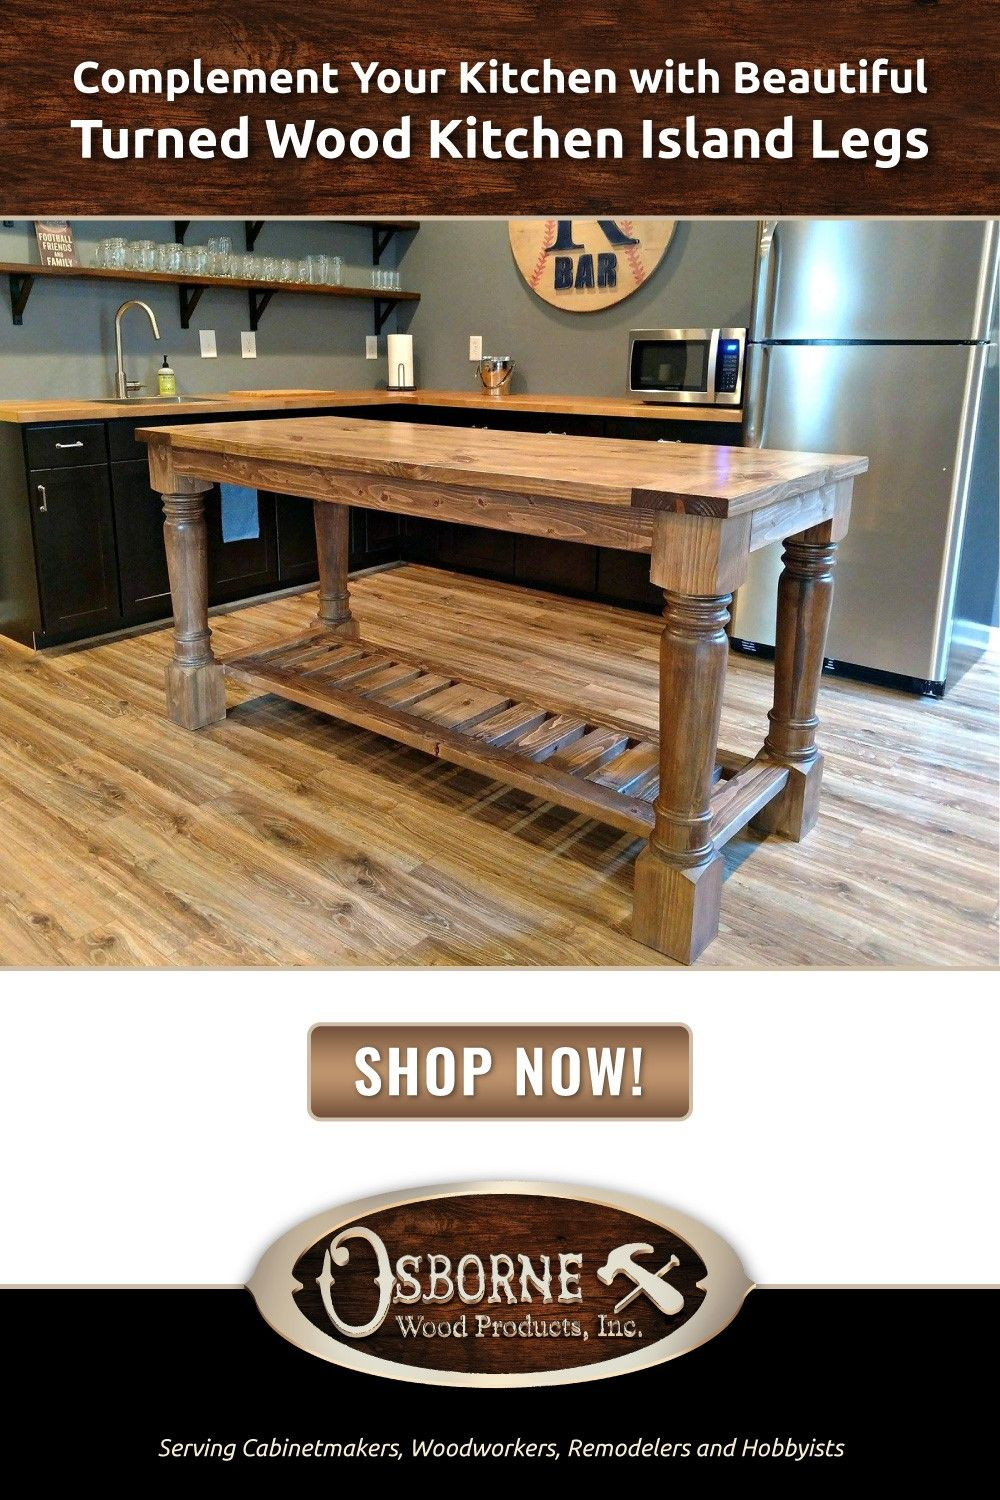 Pin By Osborne Wood Products On Barn Kitchen In 2020 Kitchen Island Table Wooden Kitchen Wood Kitchen Island